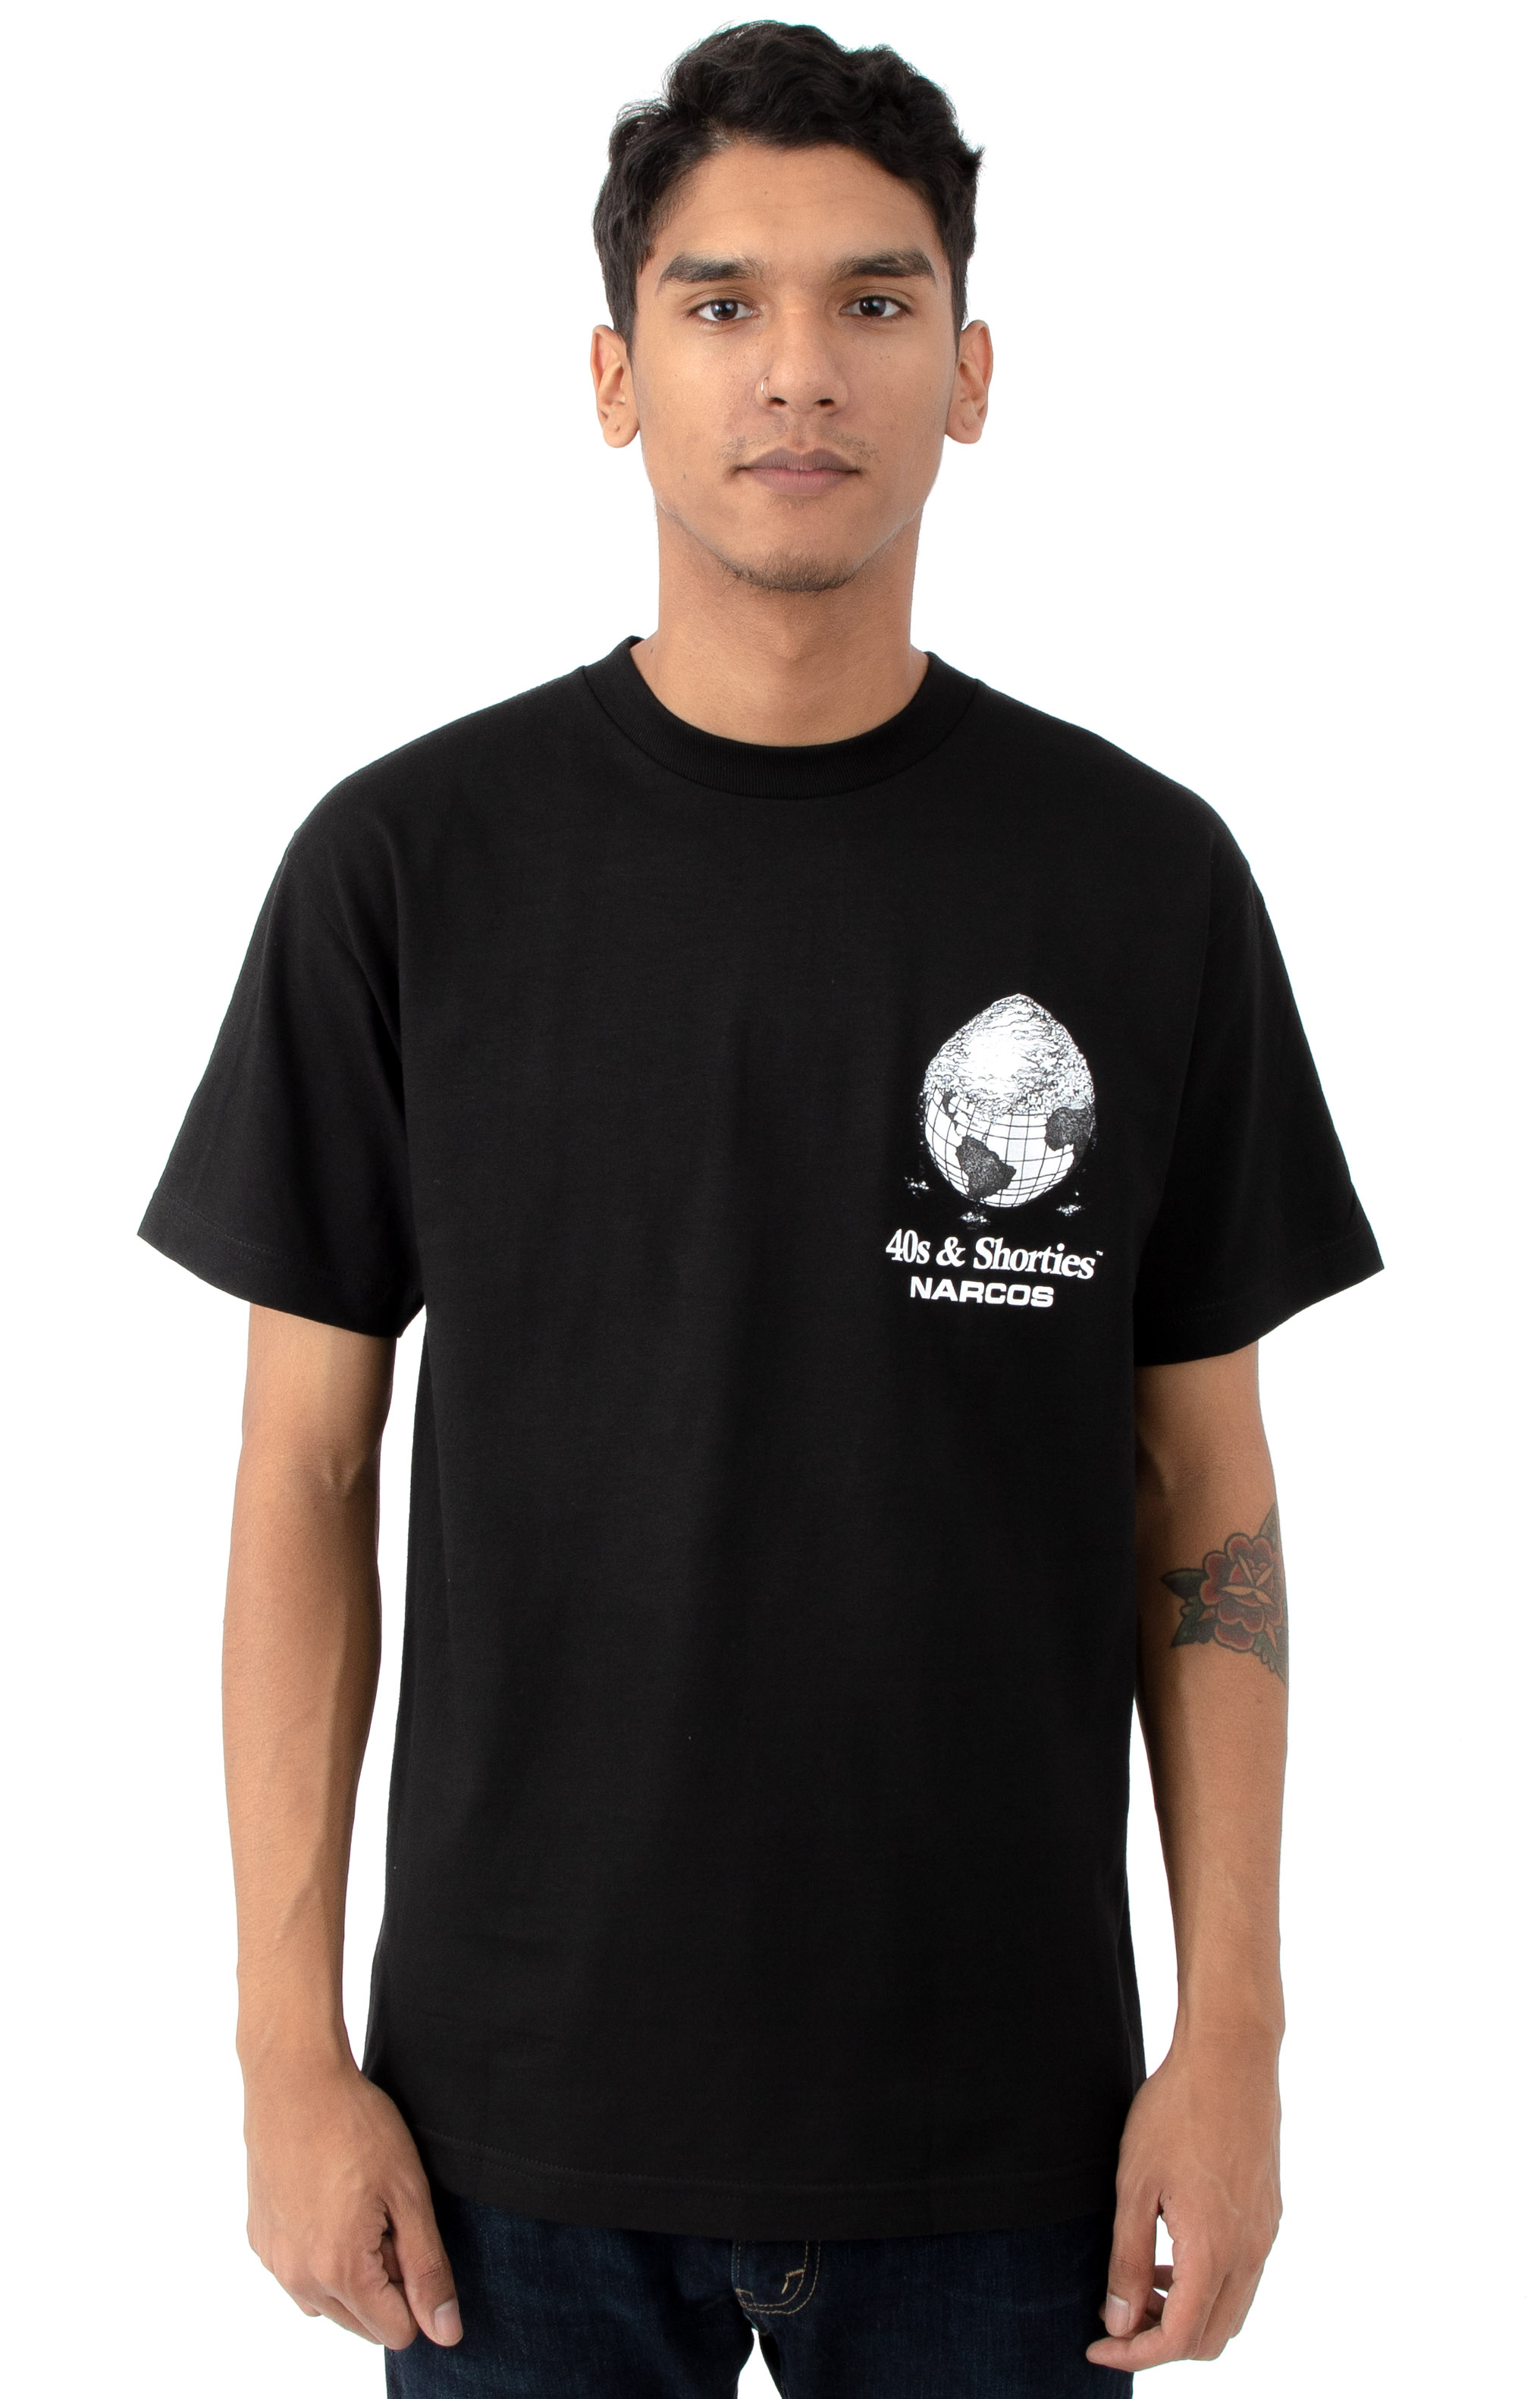 Cover The Earth T-Shirt - Black 2